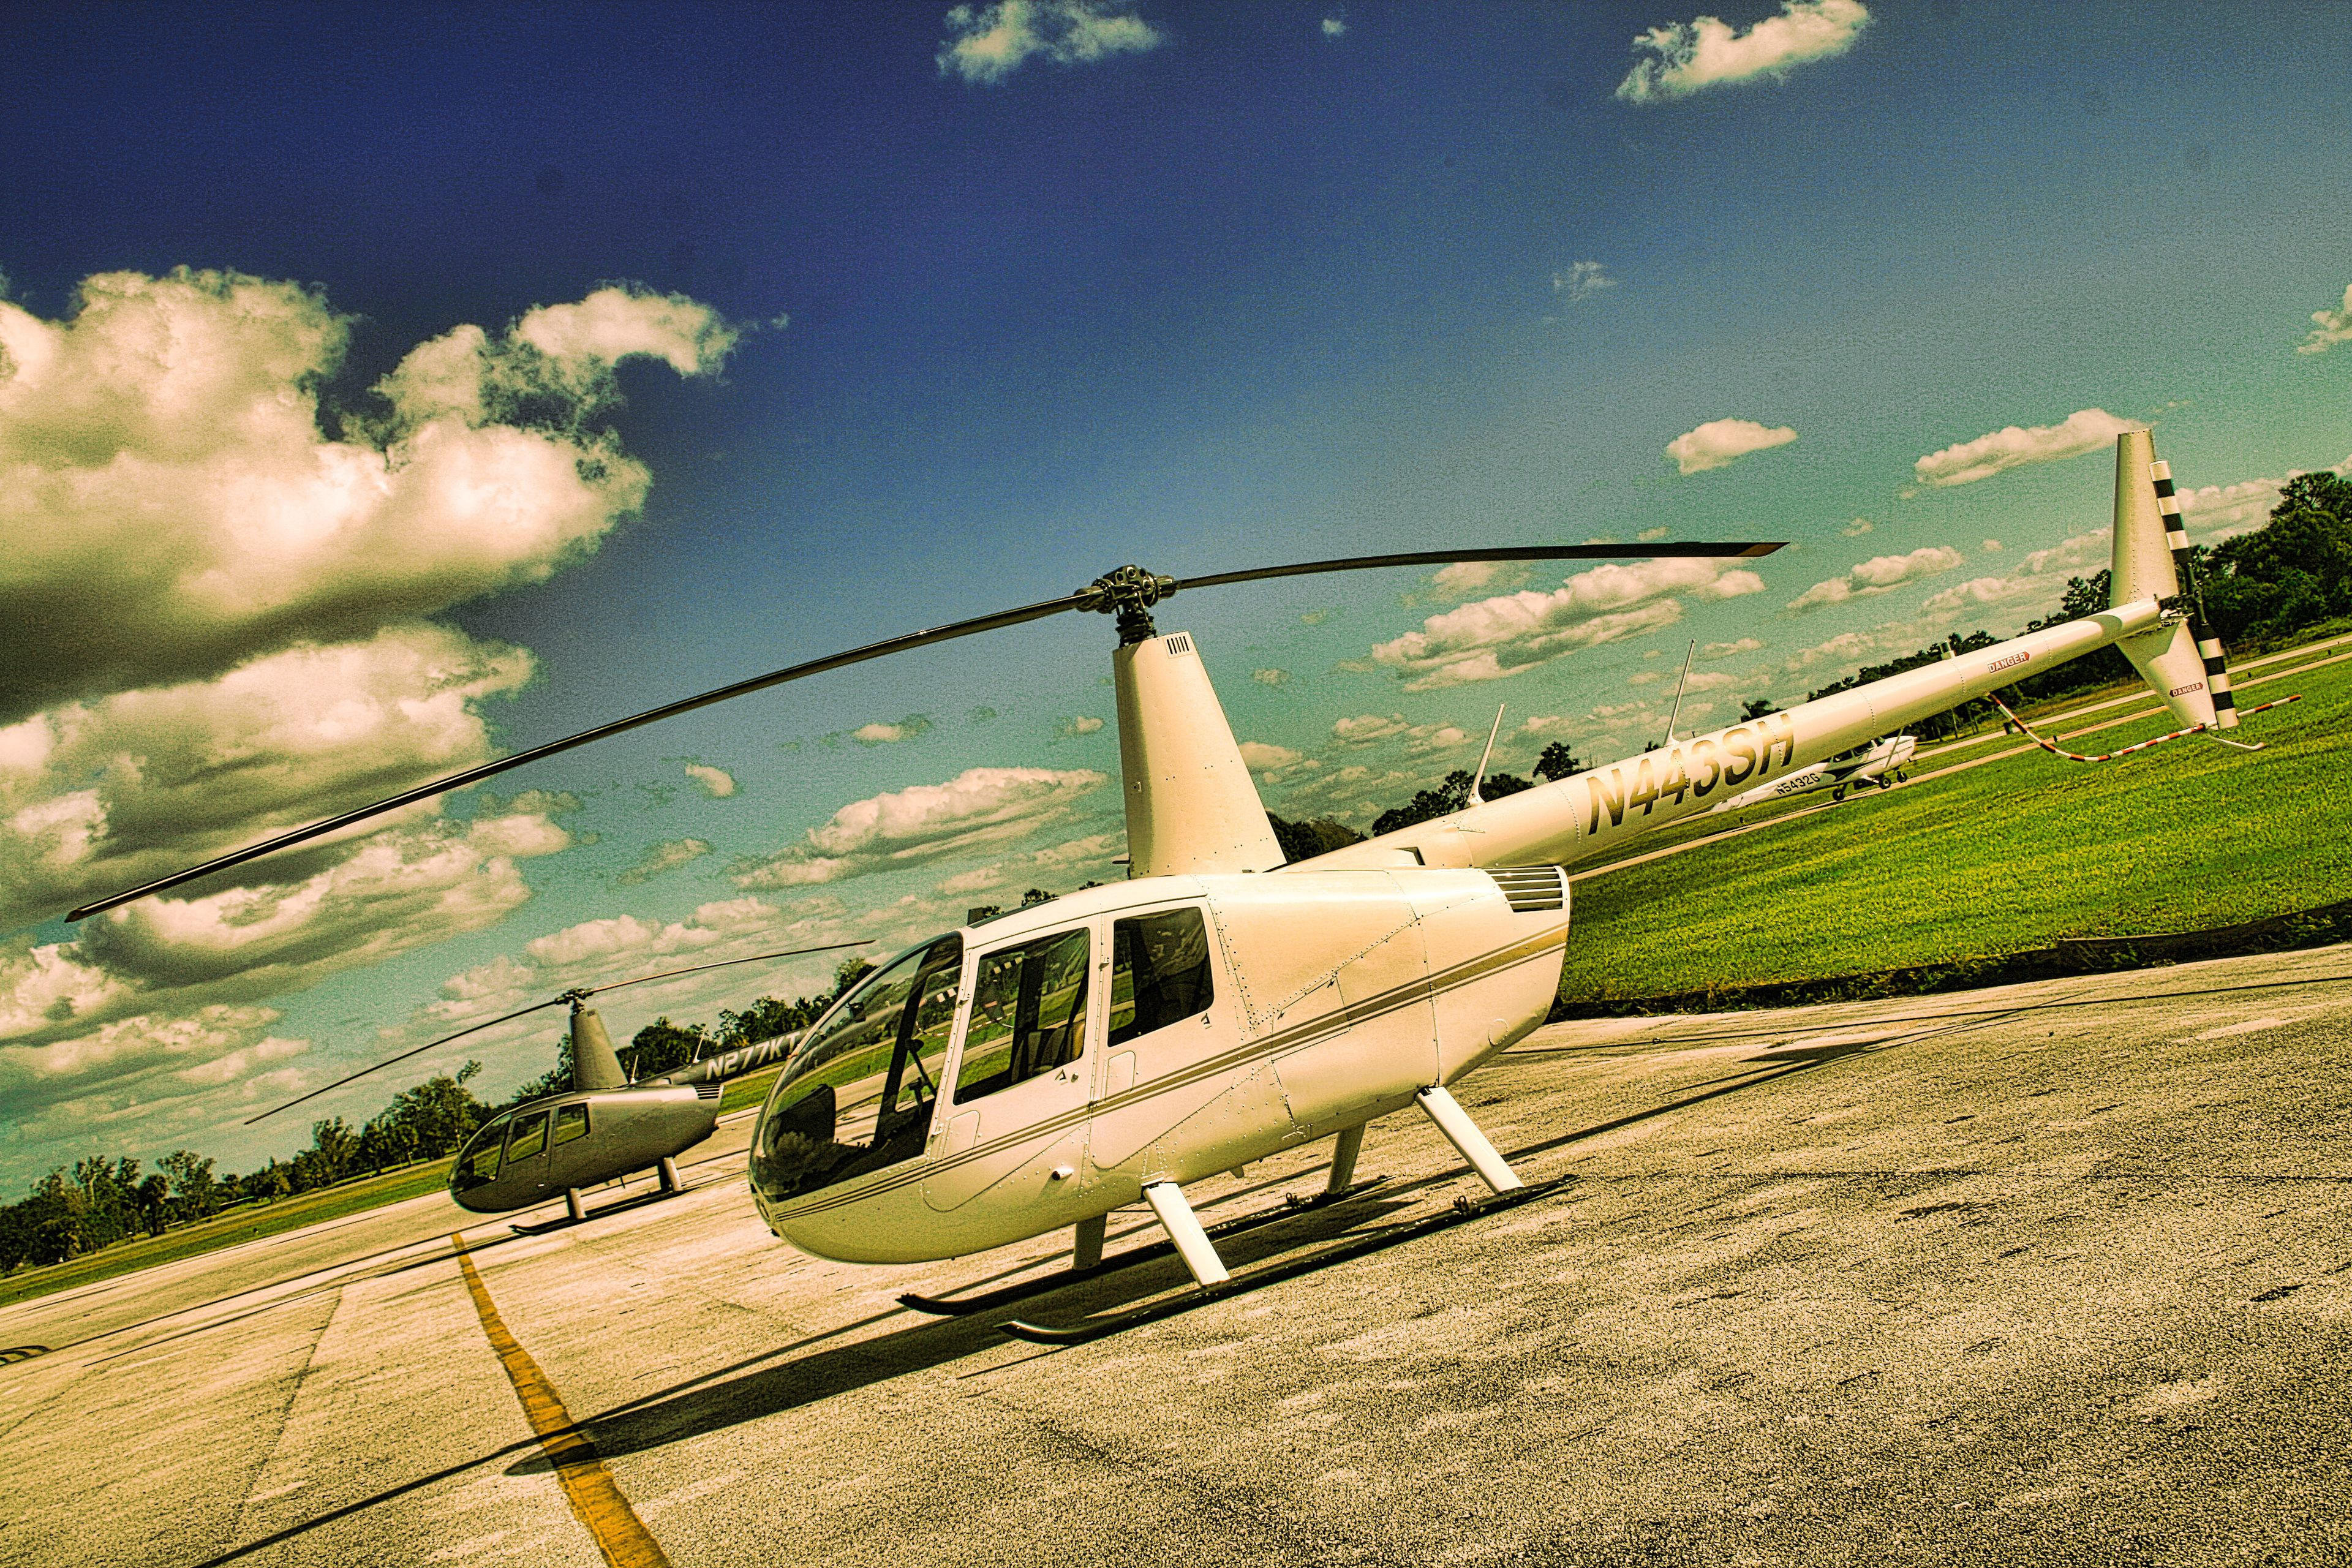 Helicopter in Florida